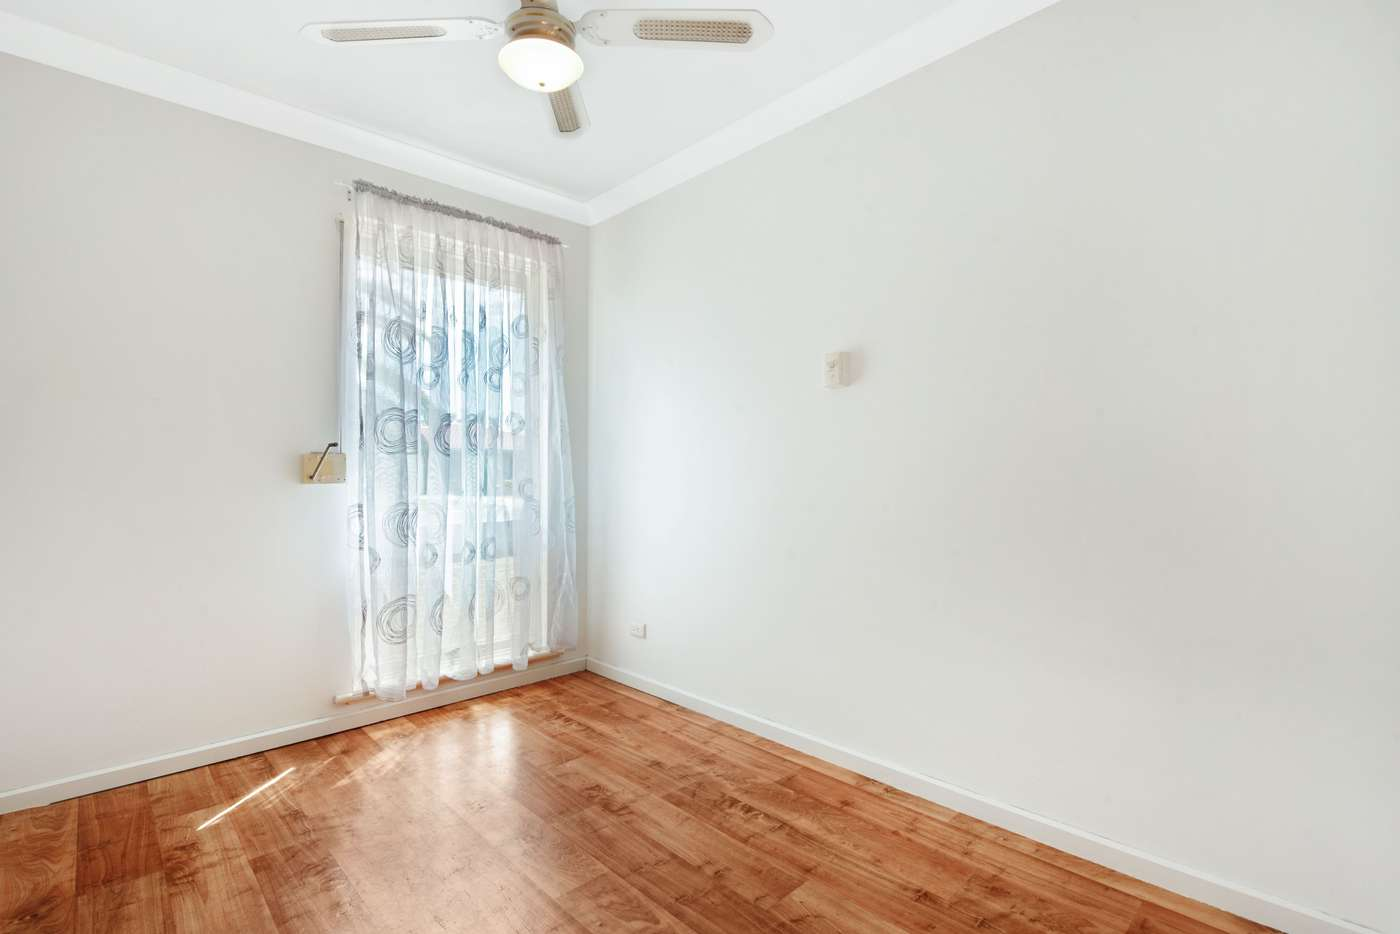 Seventh view of Homely house listing, 8 Wirraway Court, North Haven SA 5018